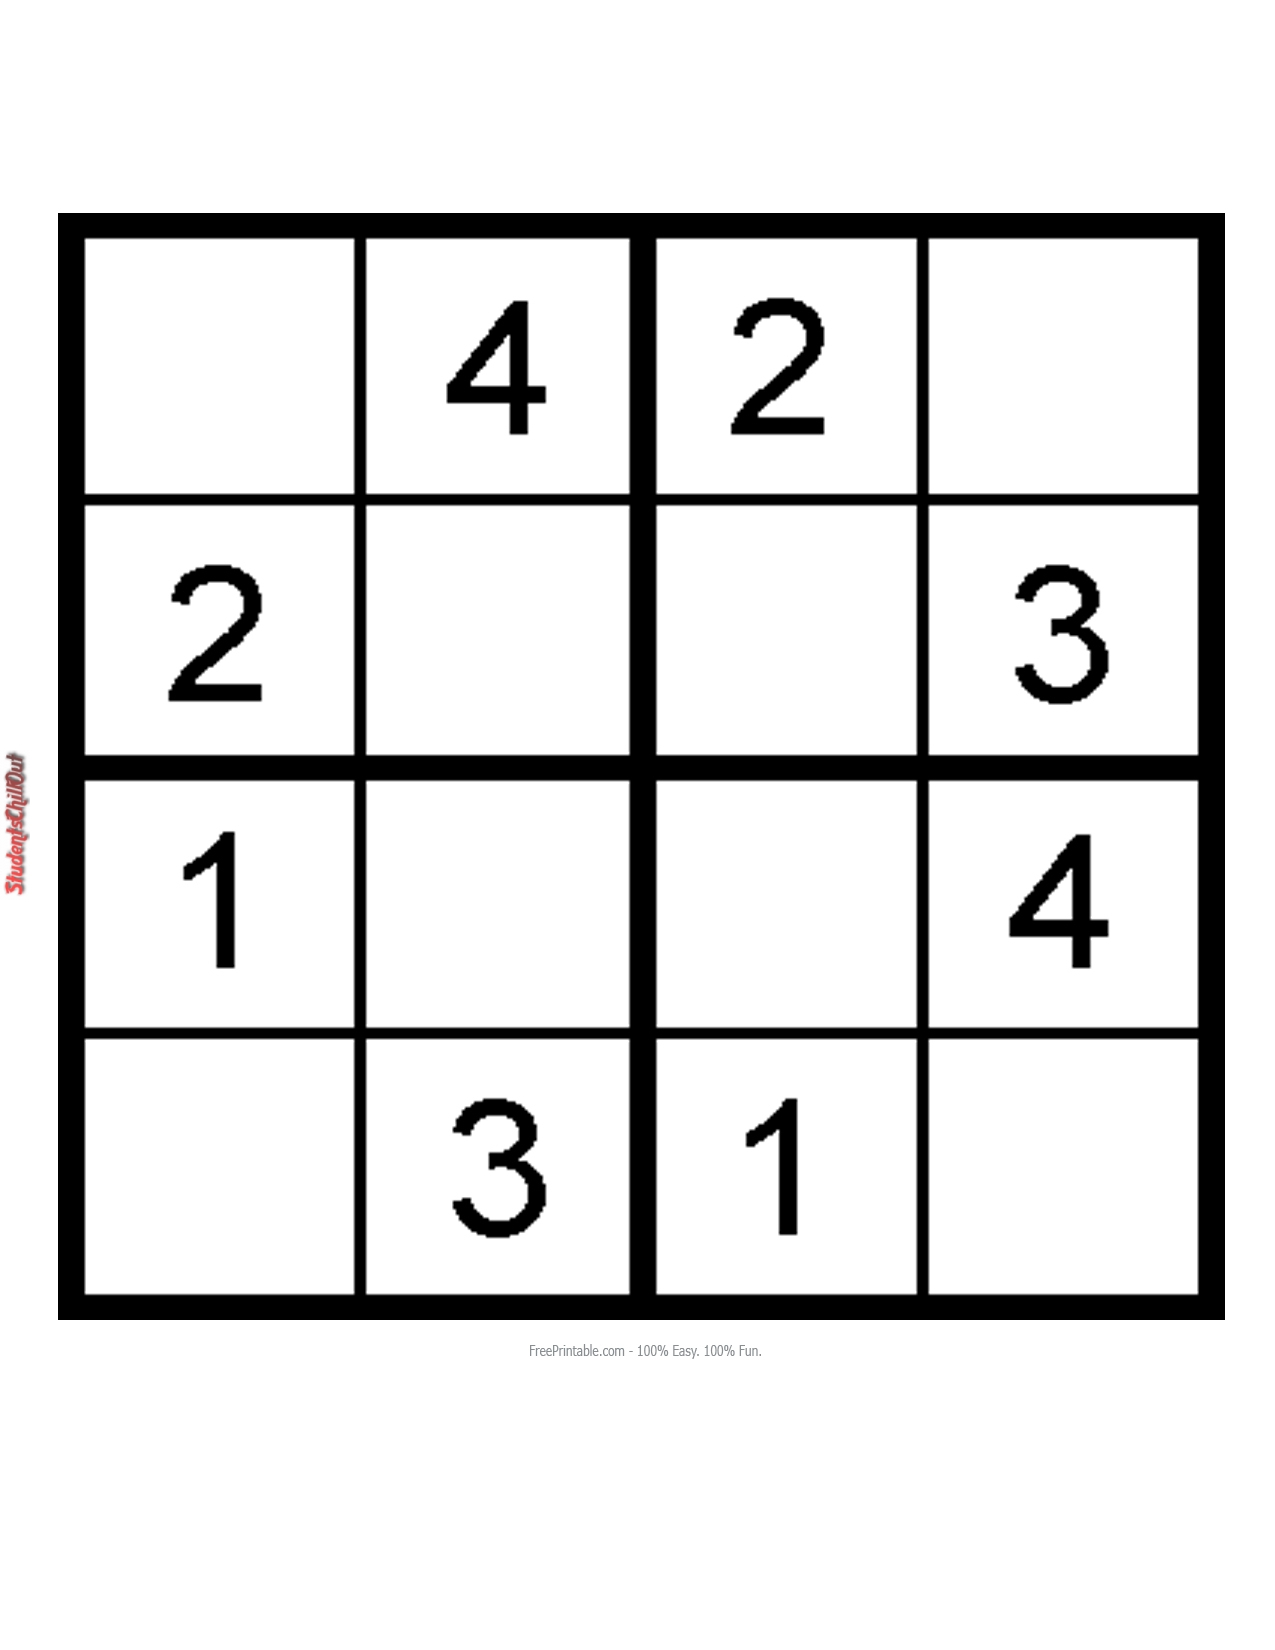 Mesmerizing image pertaining to sudoku for kids printable